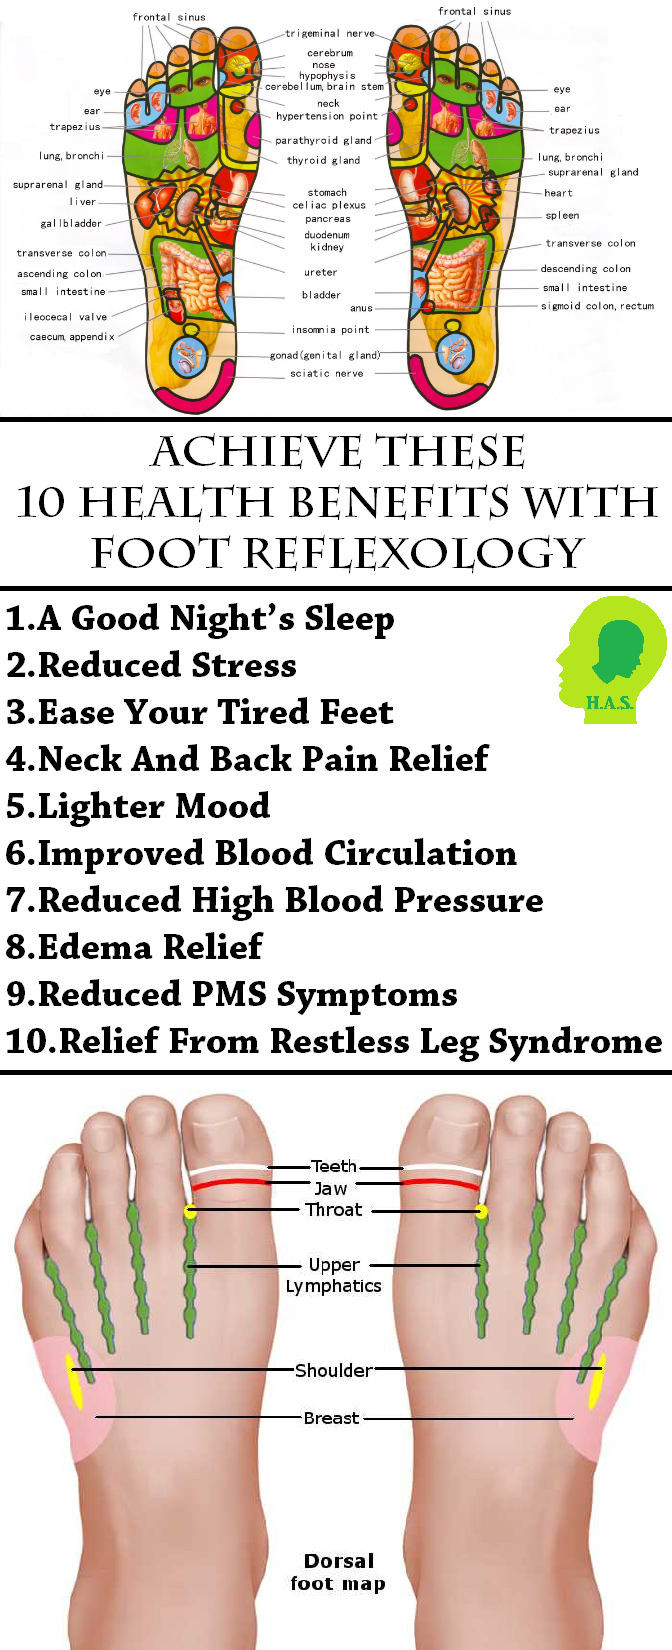 Foot Reflexology Centers On The Theory That There Are -5880